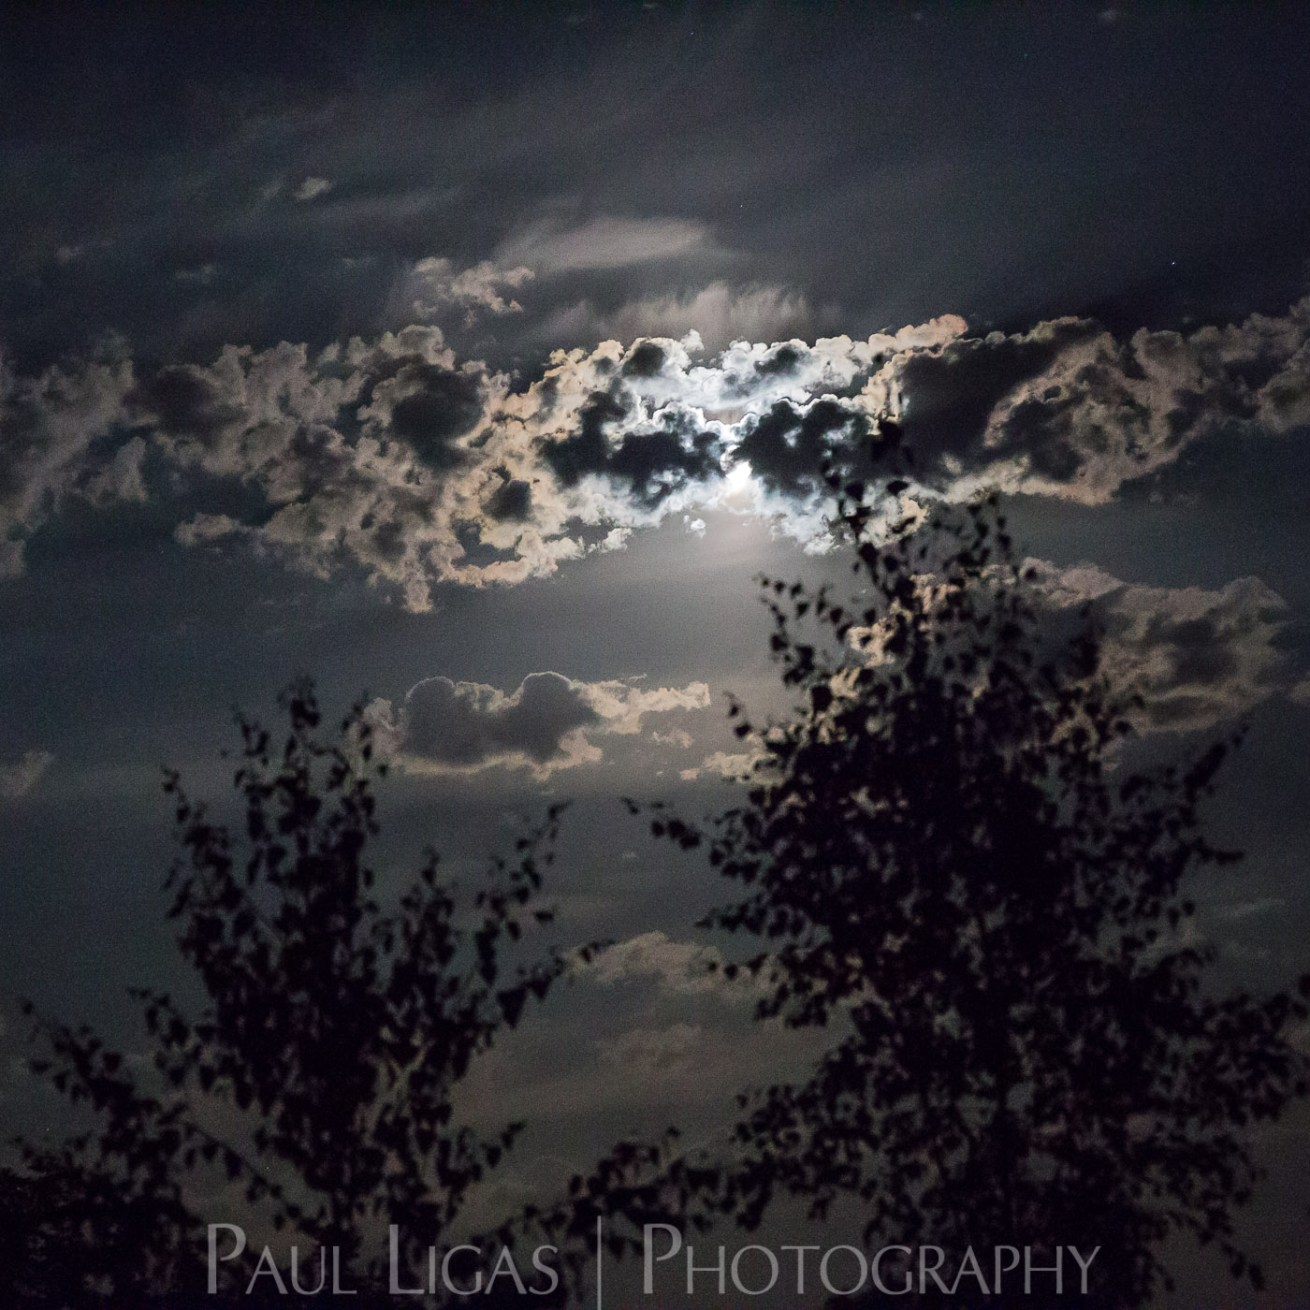 The Moon behind clouds photographer photography Herefordshire astrophotography landscape 0064